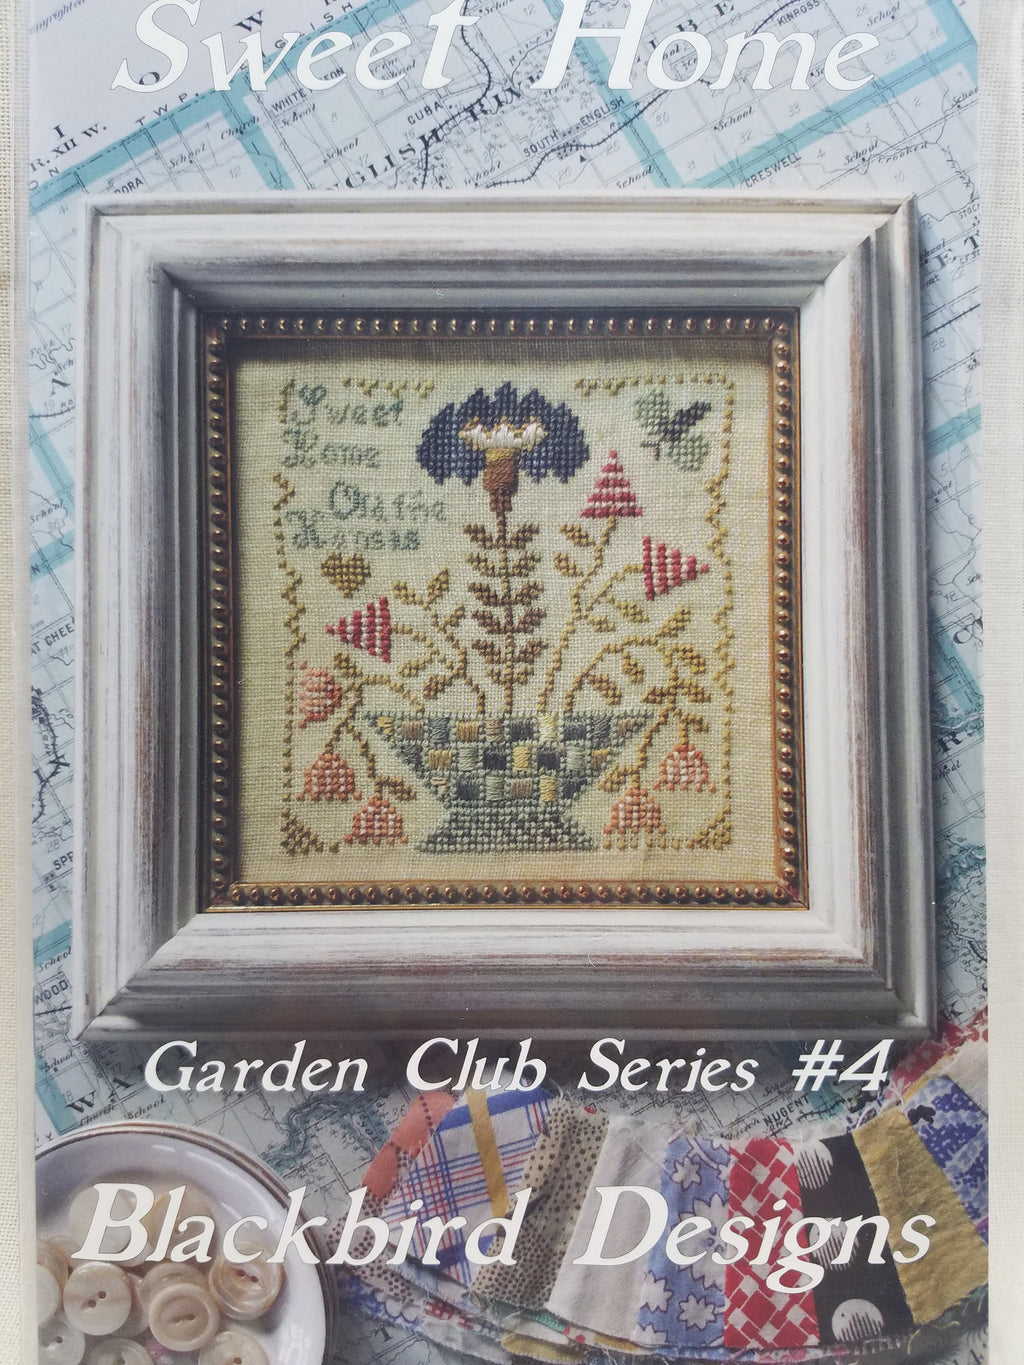 Garden Club Series #4 ~ Sweet Home ~ Blackbird Designs